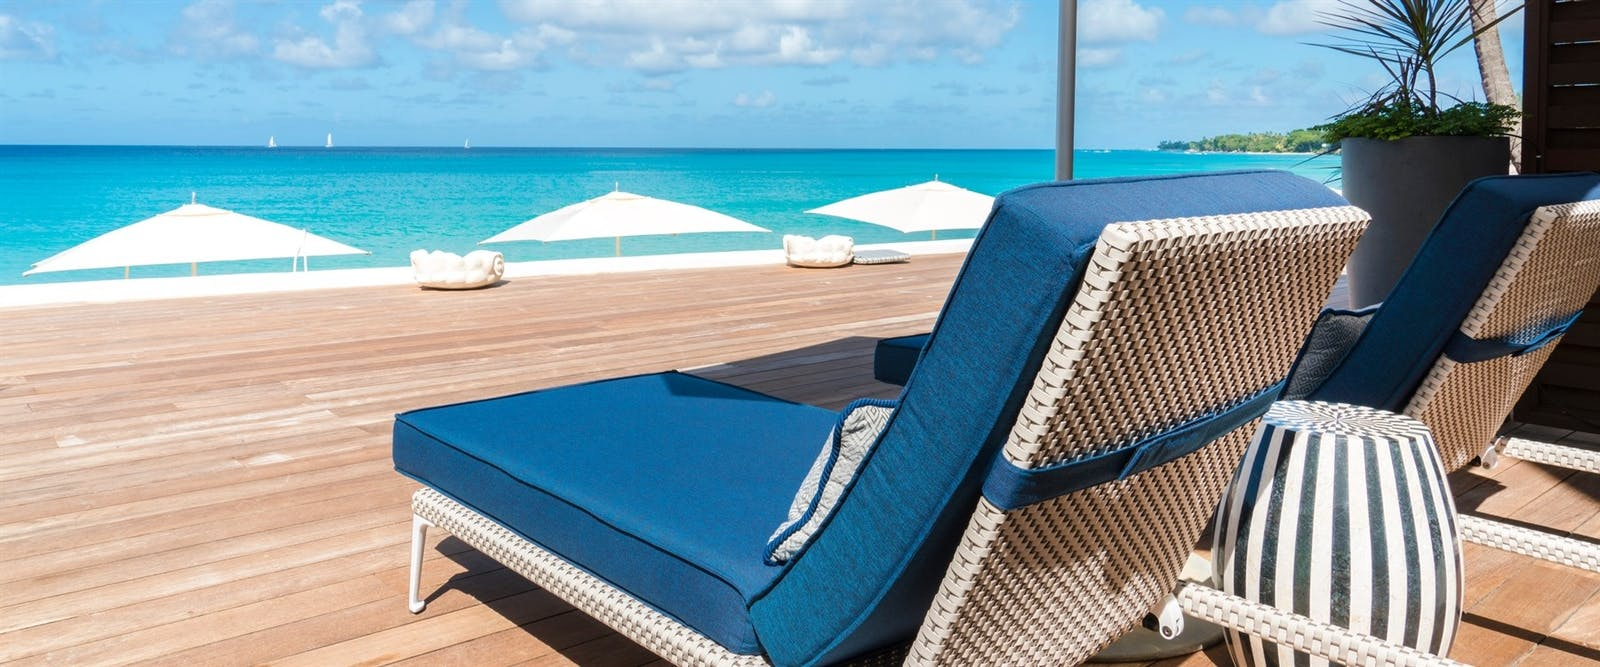 Beachfront Suite Patio at Fairmont Royal Pavilion, Barbados